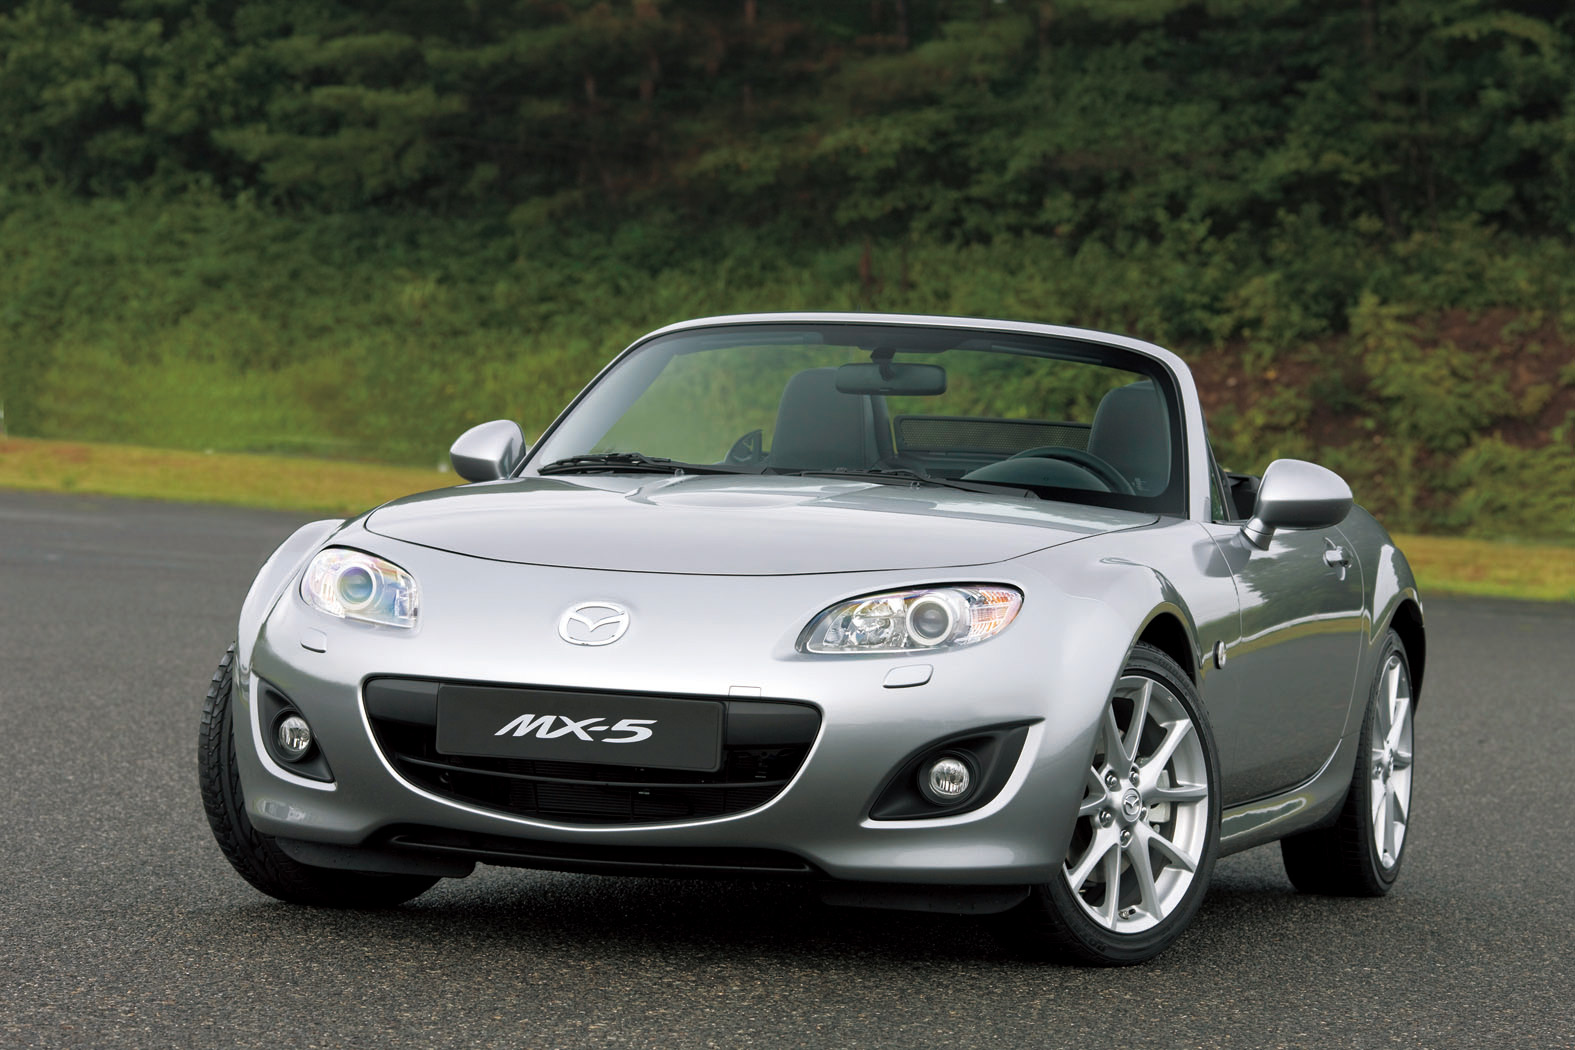 in 2005 2009 mazda mx 5 nc motorcycle pictures. Black Bedroom Furniture Sets. Home Design Ideas